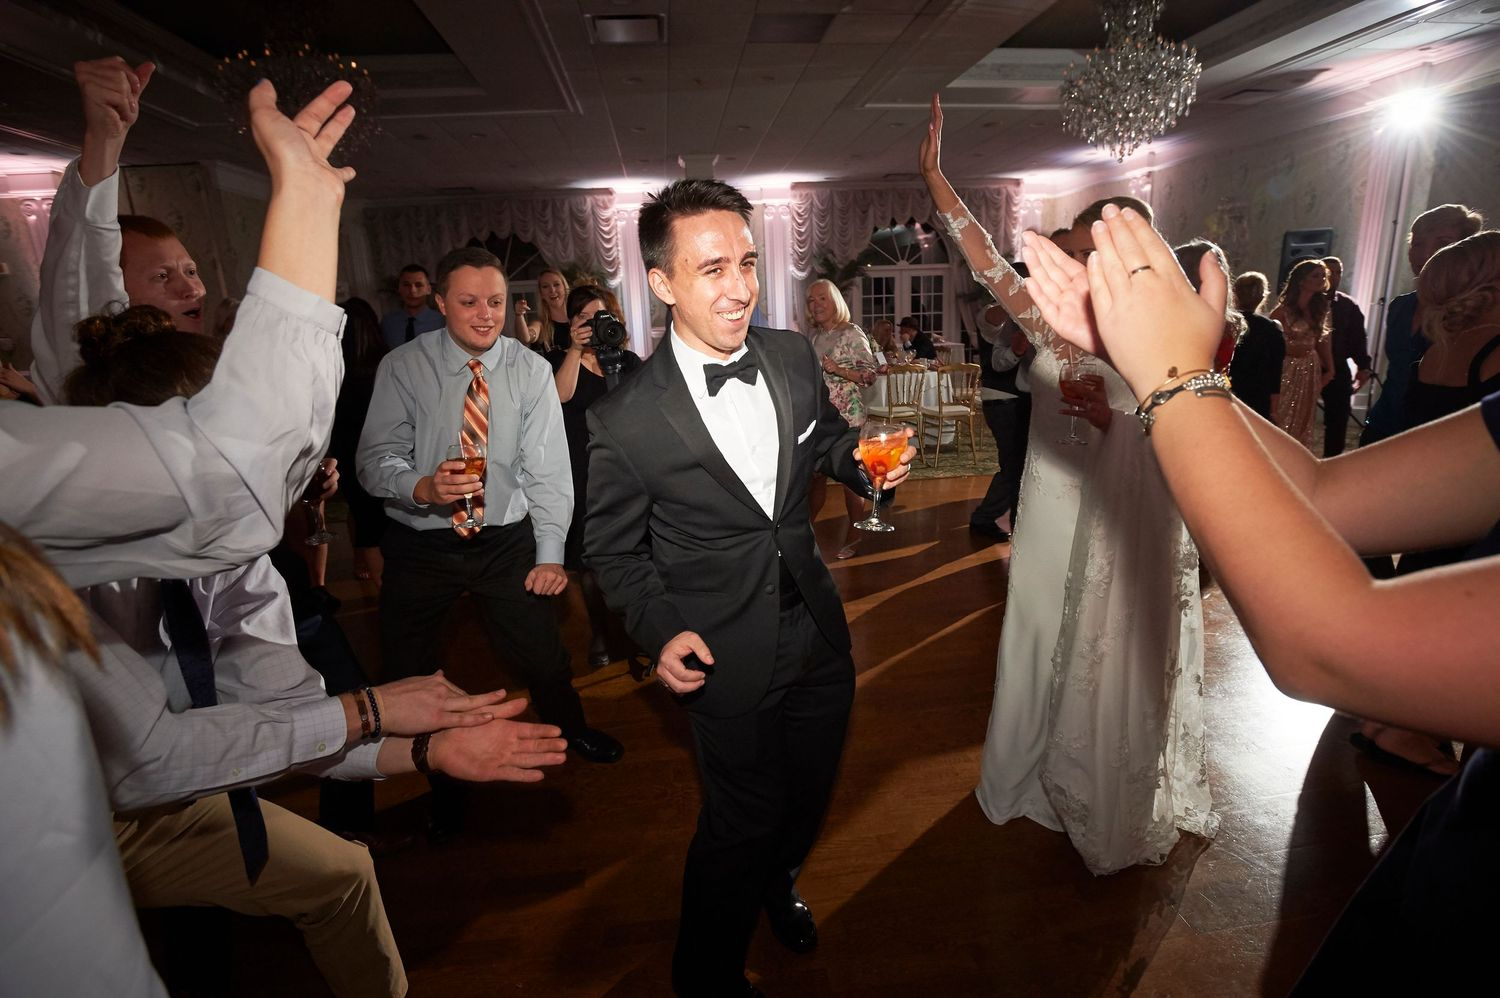 groom dances during reception at Bucks hotel wedding photo